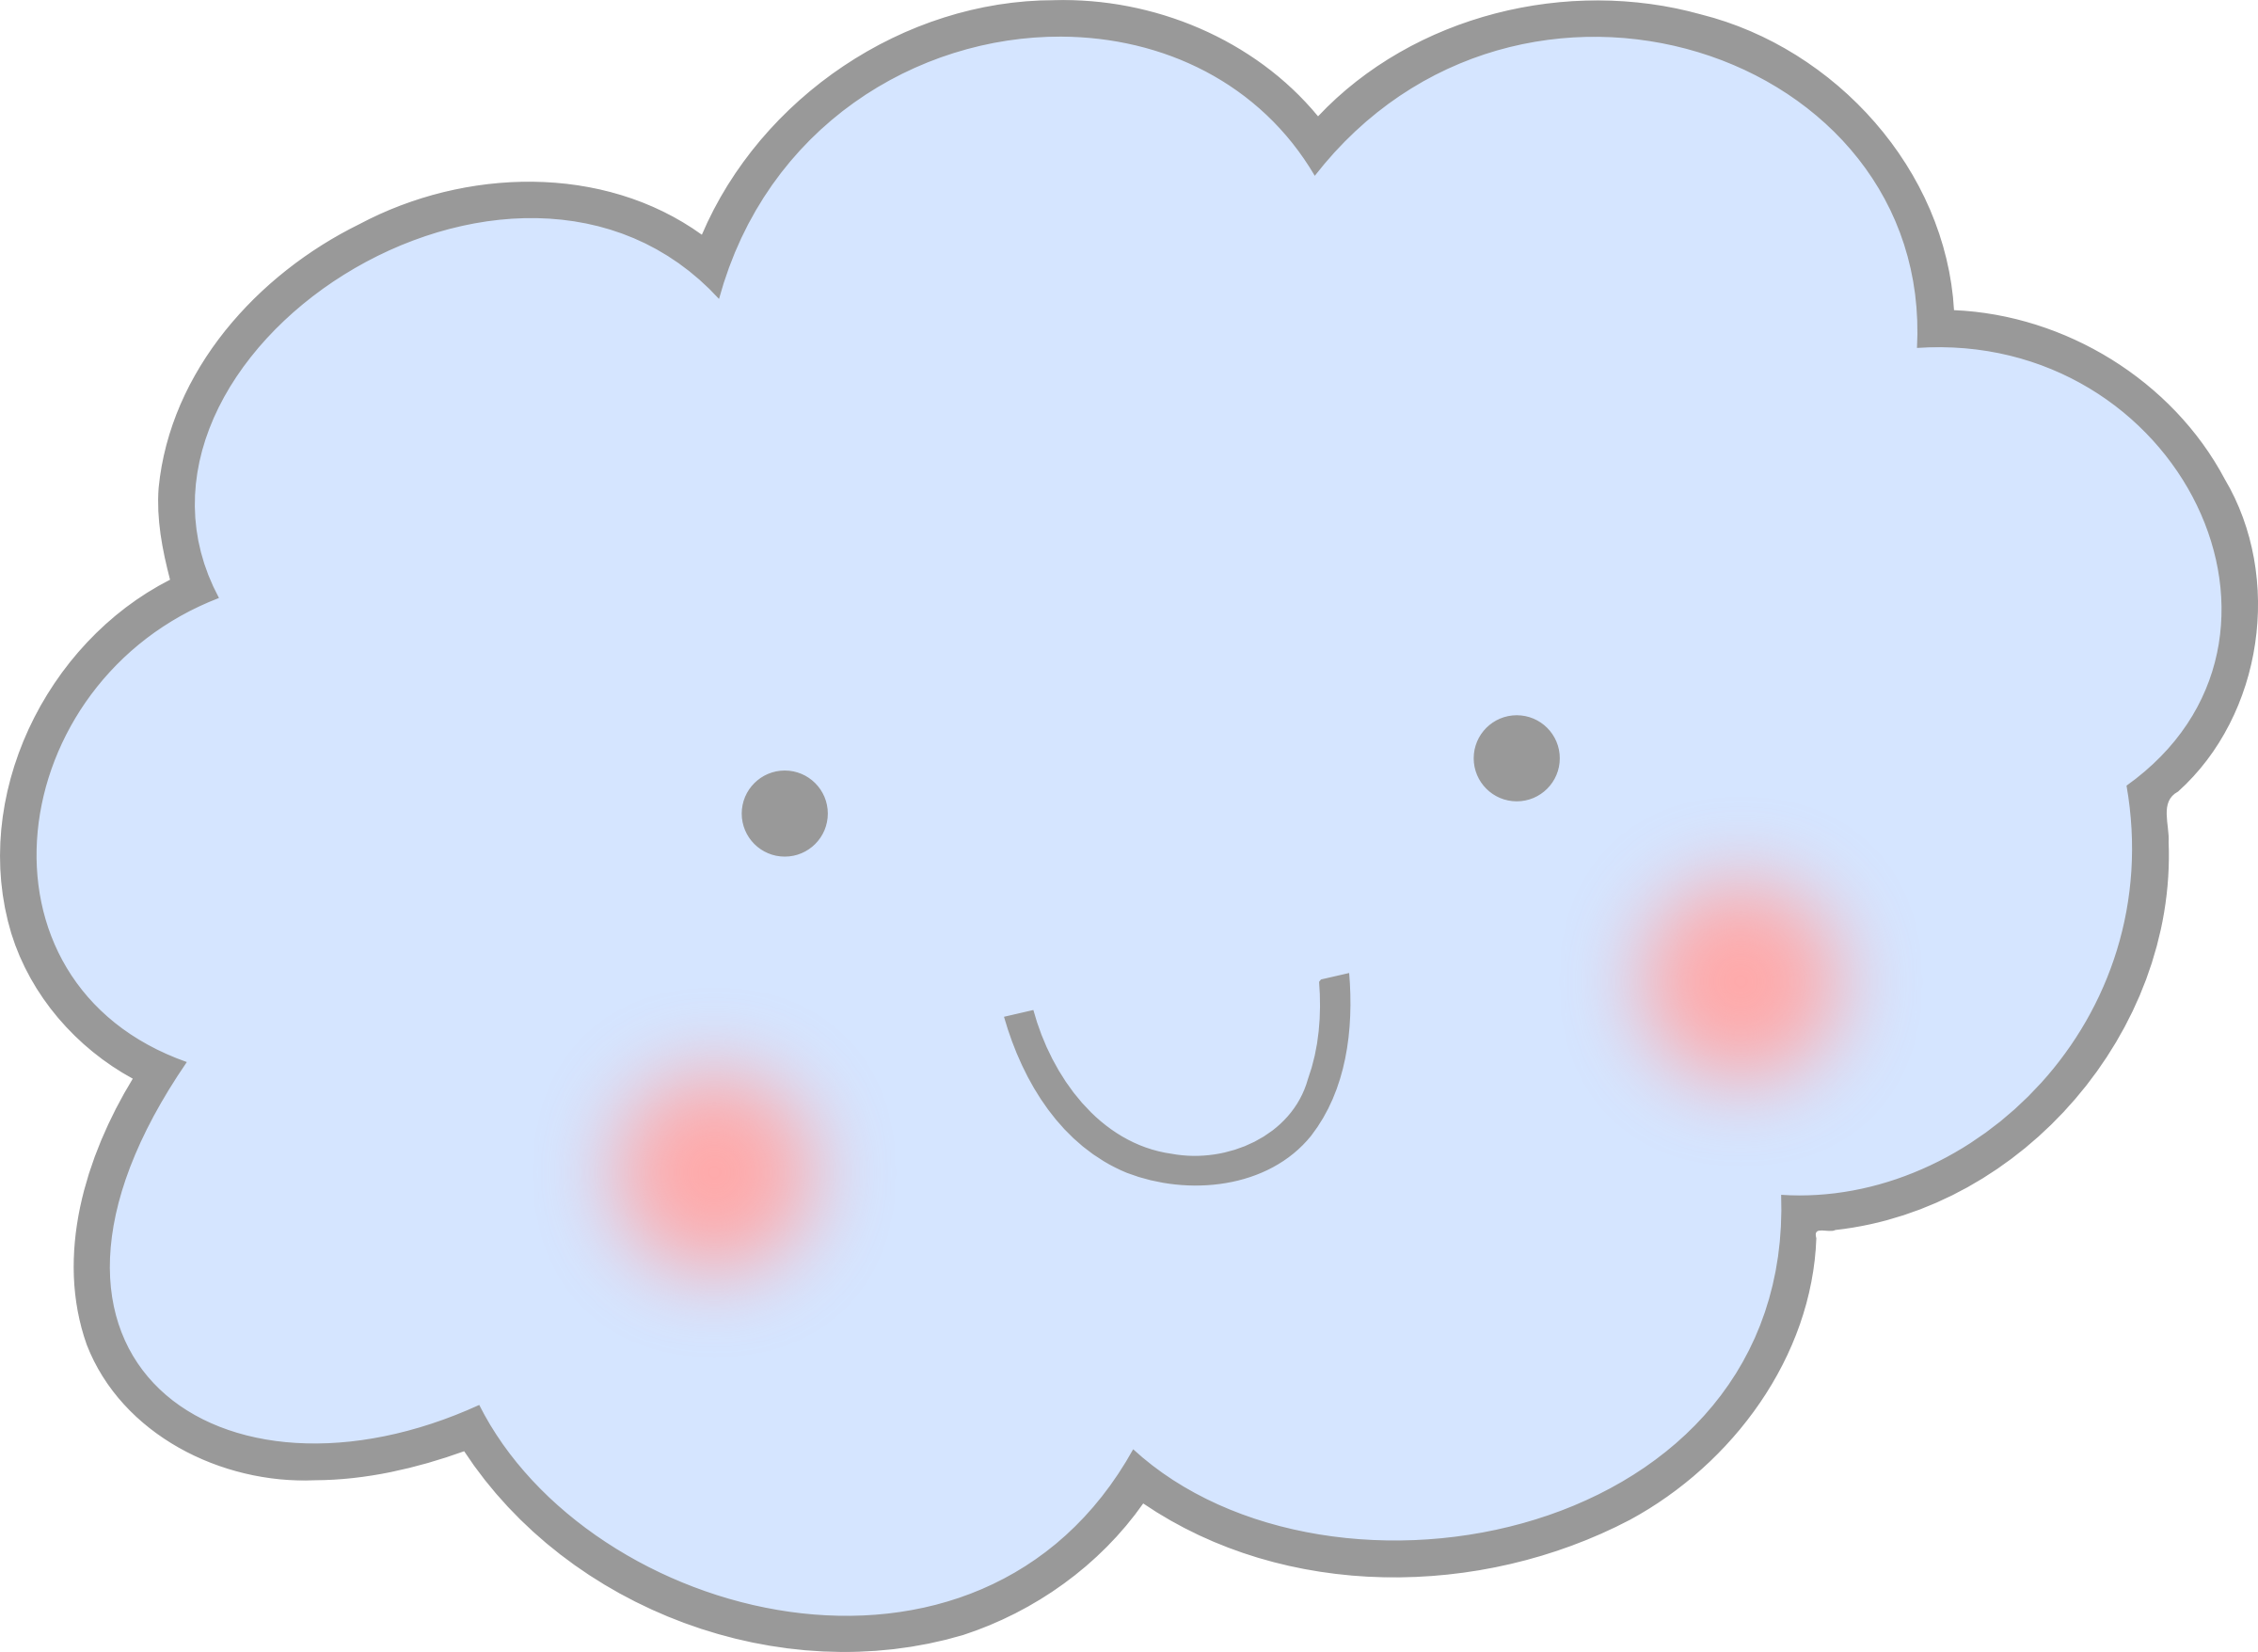 Cute Cloud by uroesch